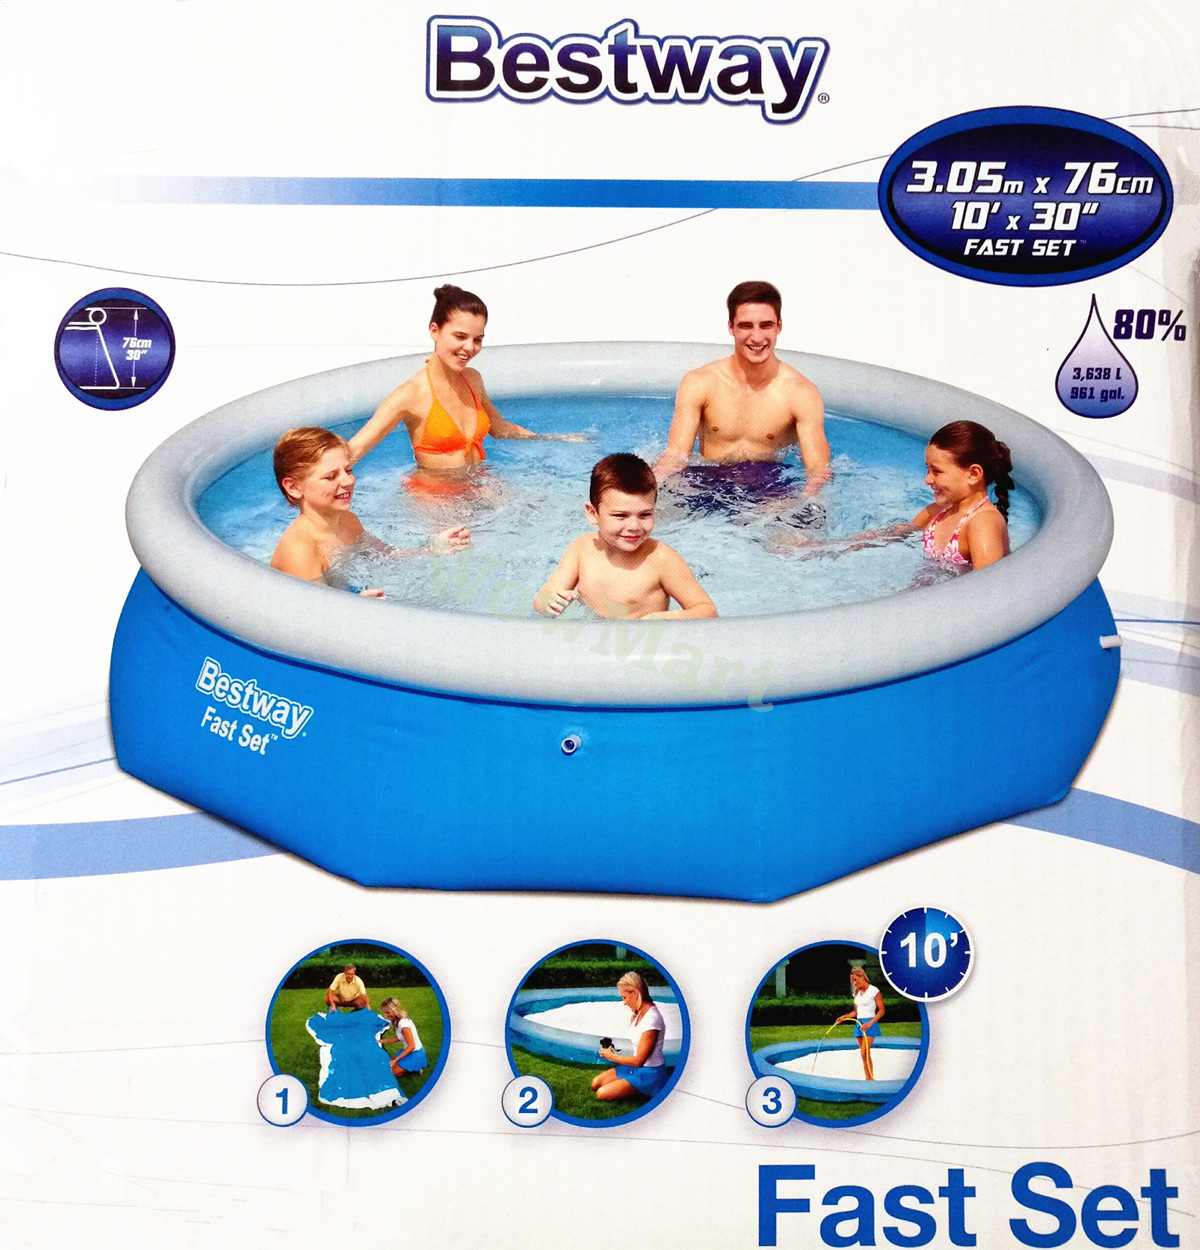 Gift New Bestway Inflatable Family 10 Foot Fast Set Pool 305cm 76cm 57266 Ebay